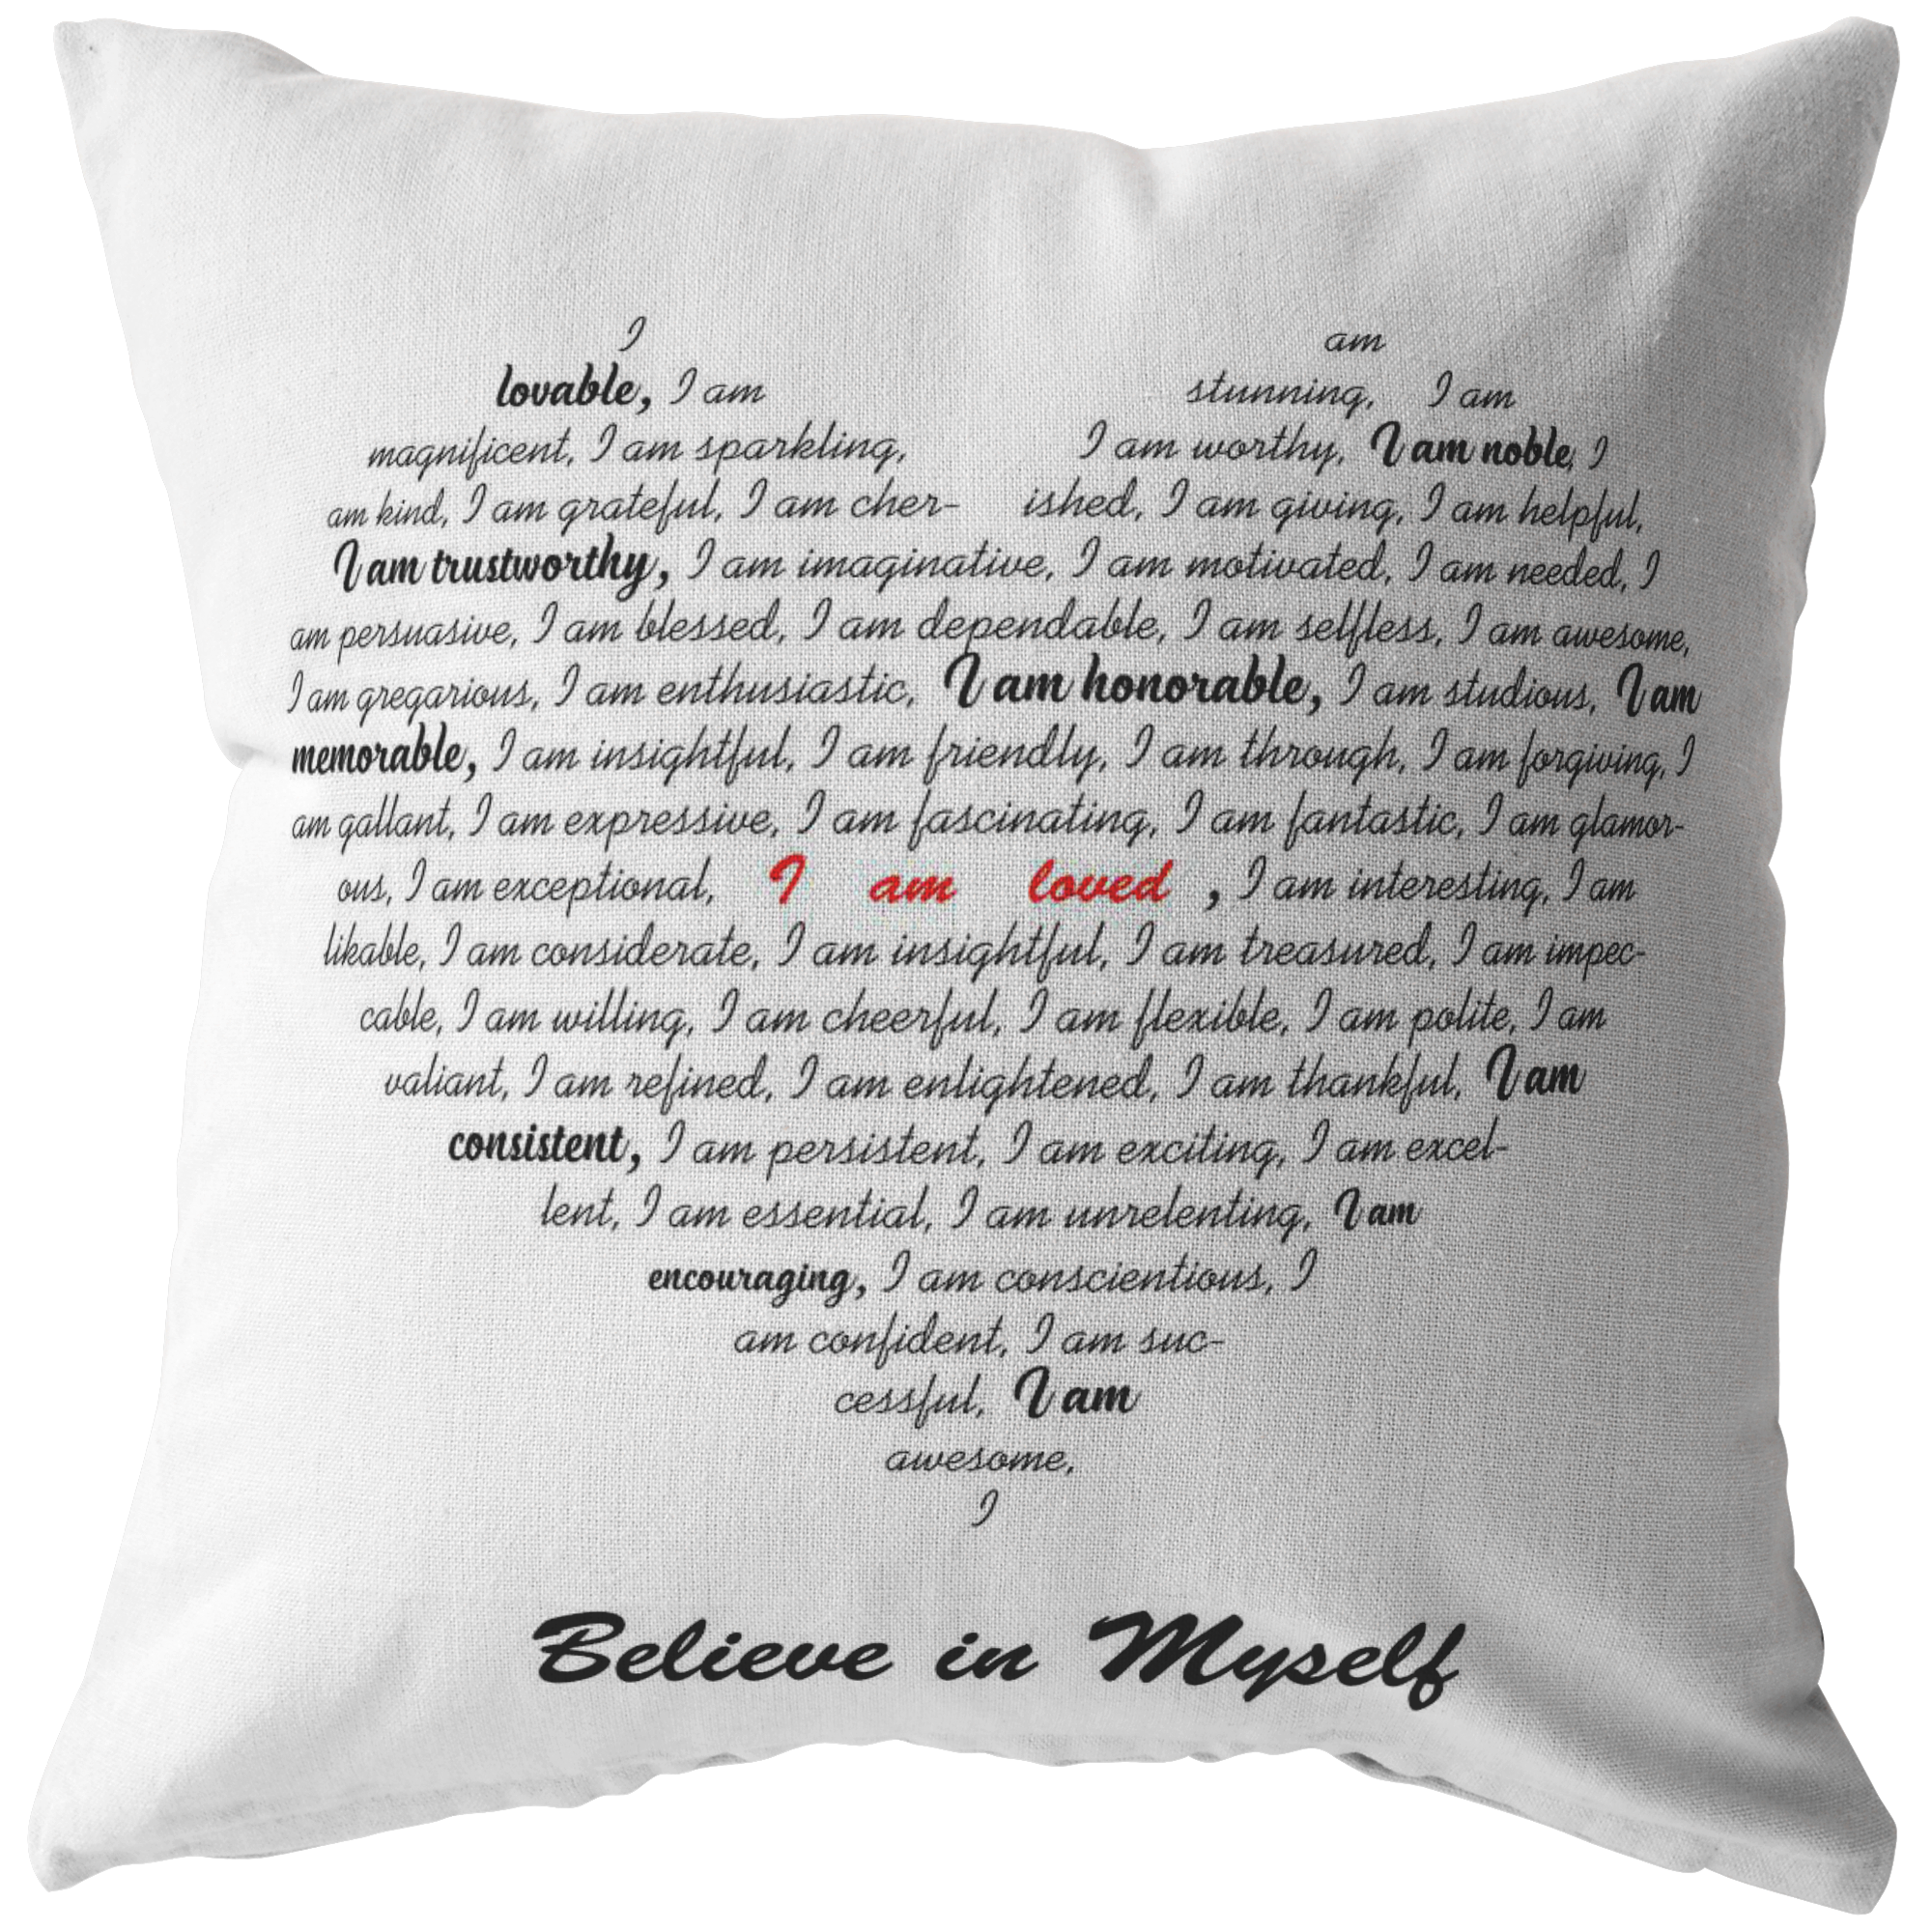 I Believe in Myself Pillow